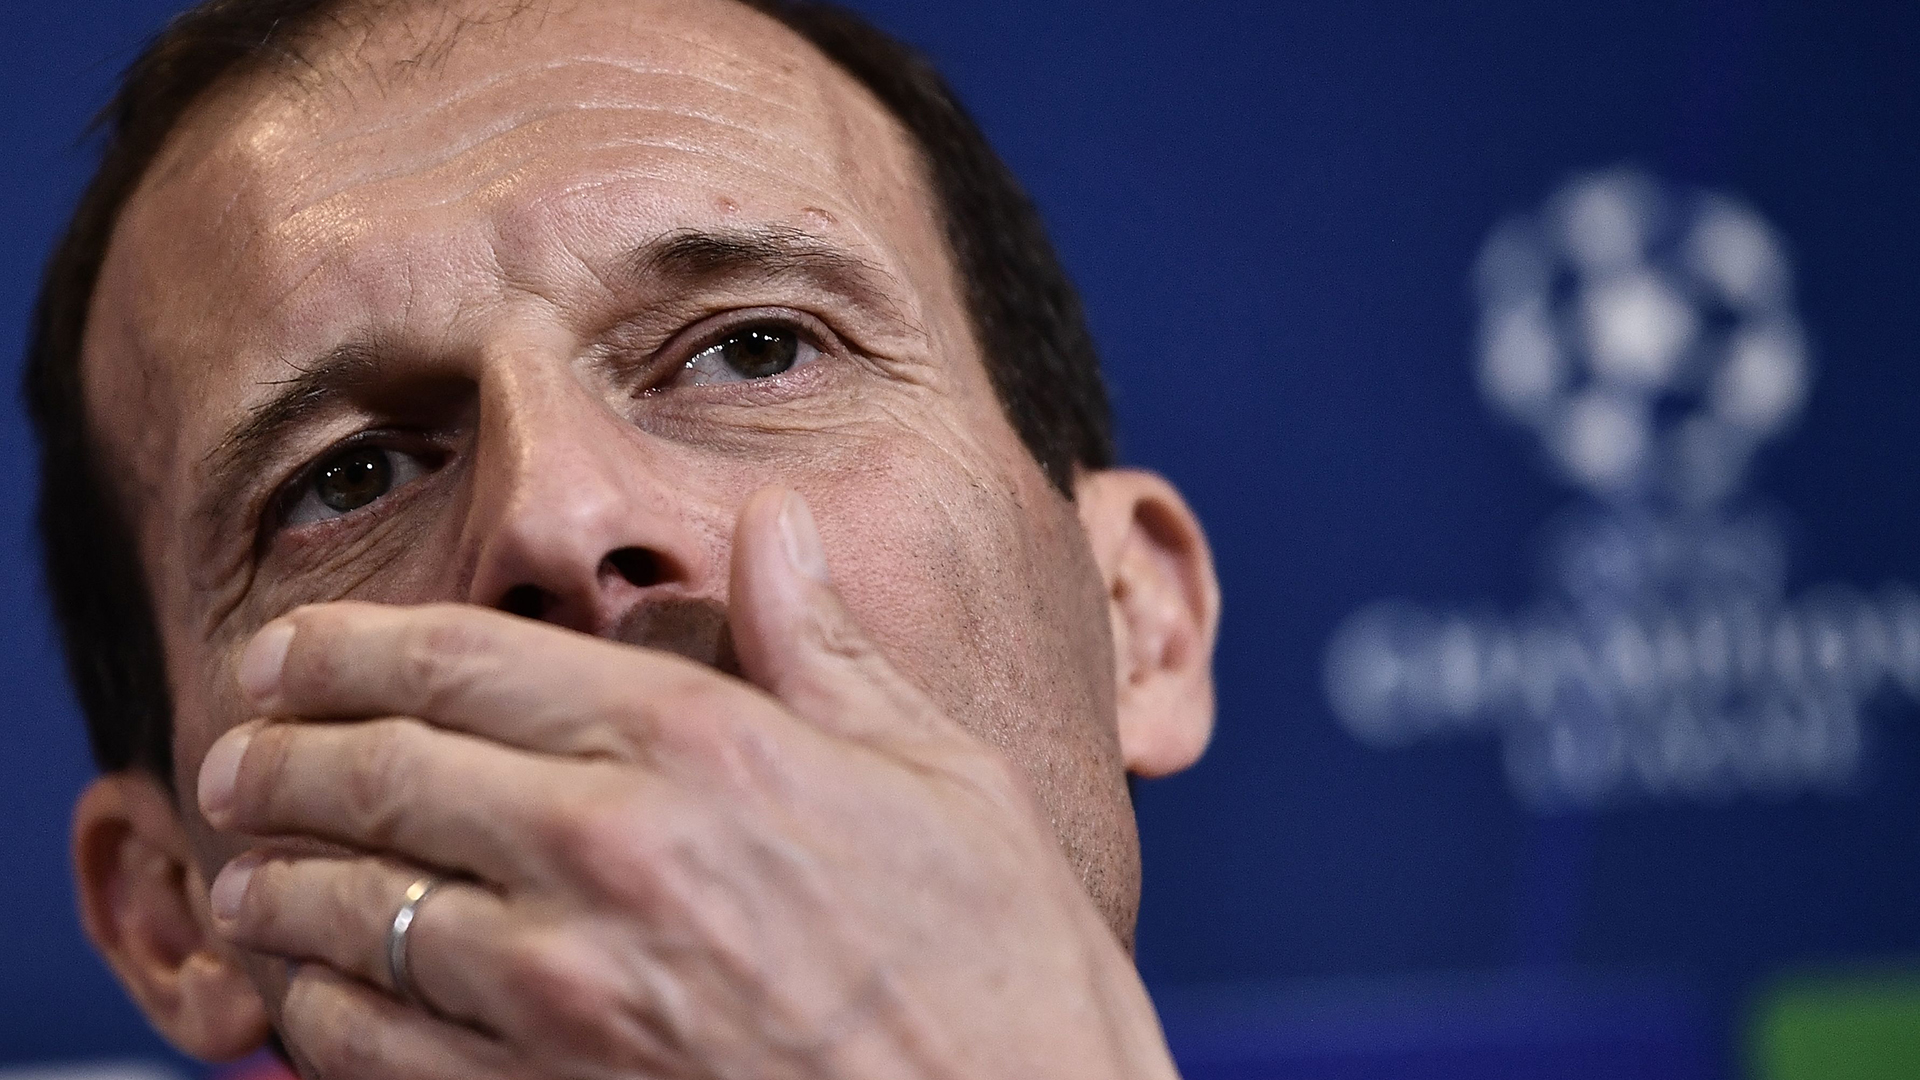 Juventus announce Allegri to leave this summer